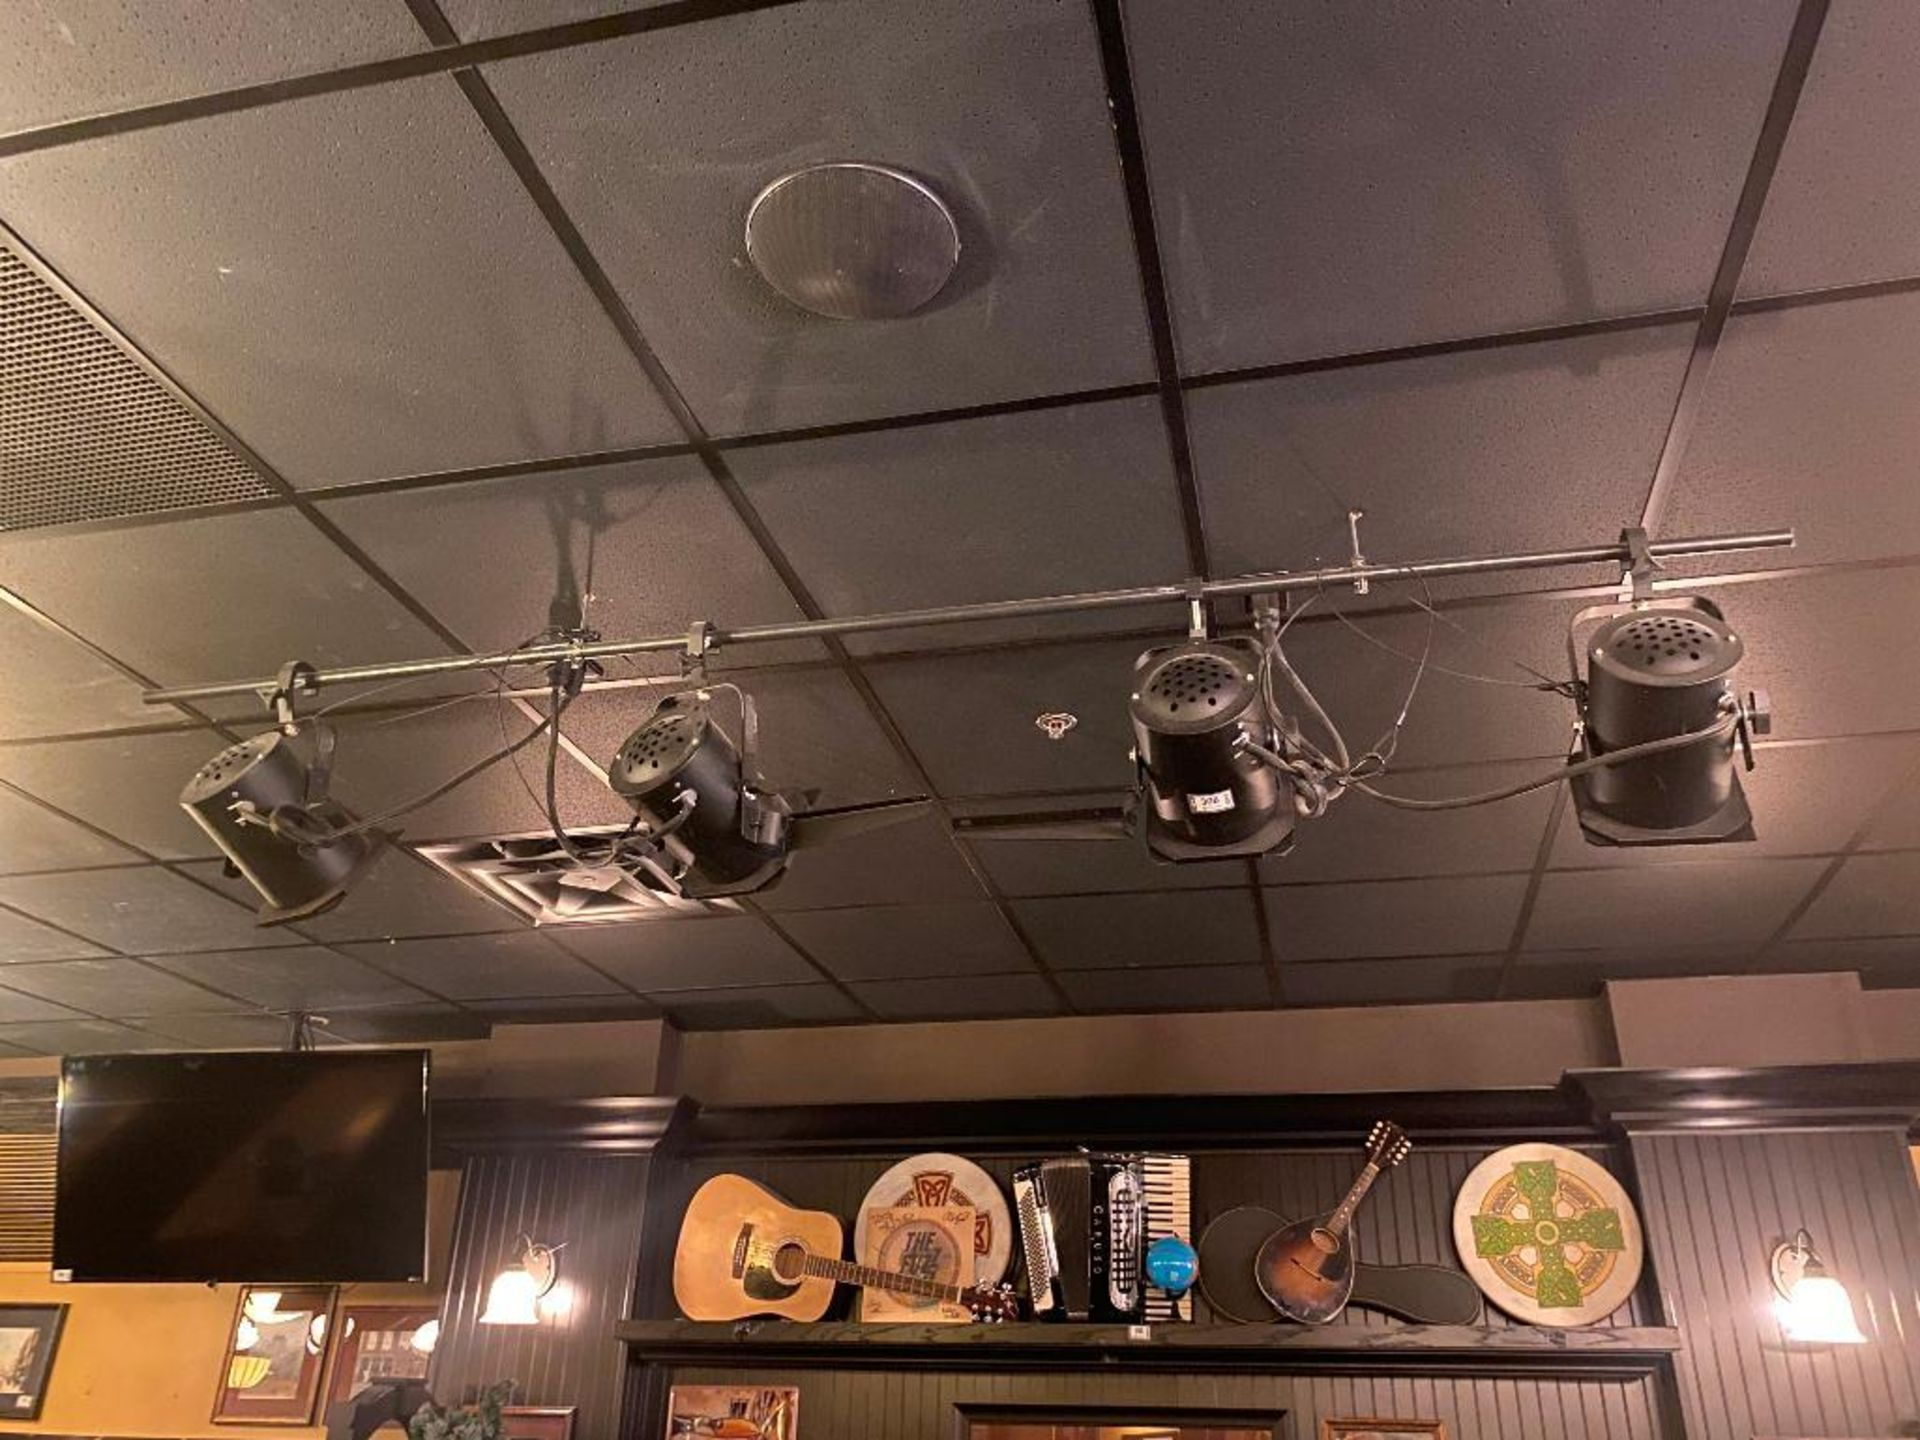 LOT OF (4) STAGE LIGHTS - NOTE: REQUIRES REMOVAL FROM CEILING - Image 3 of 3